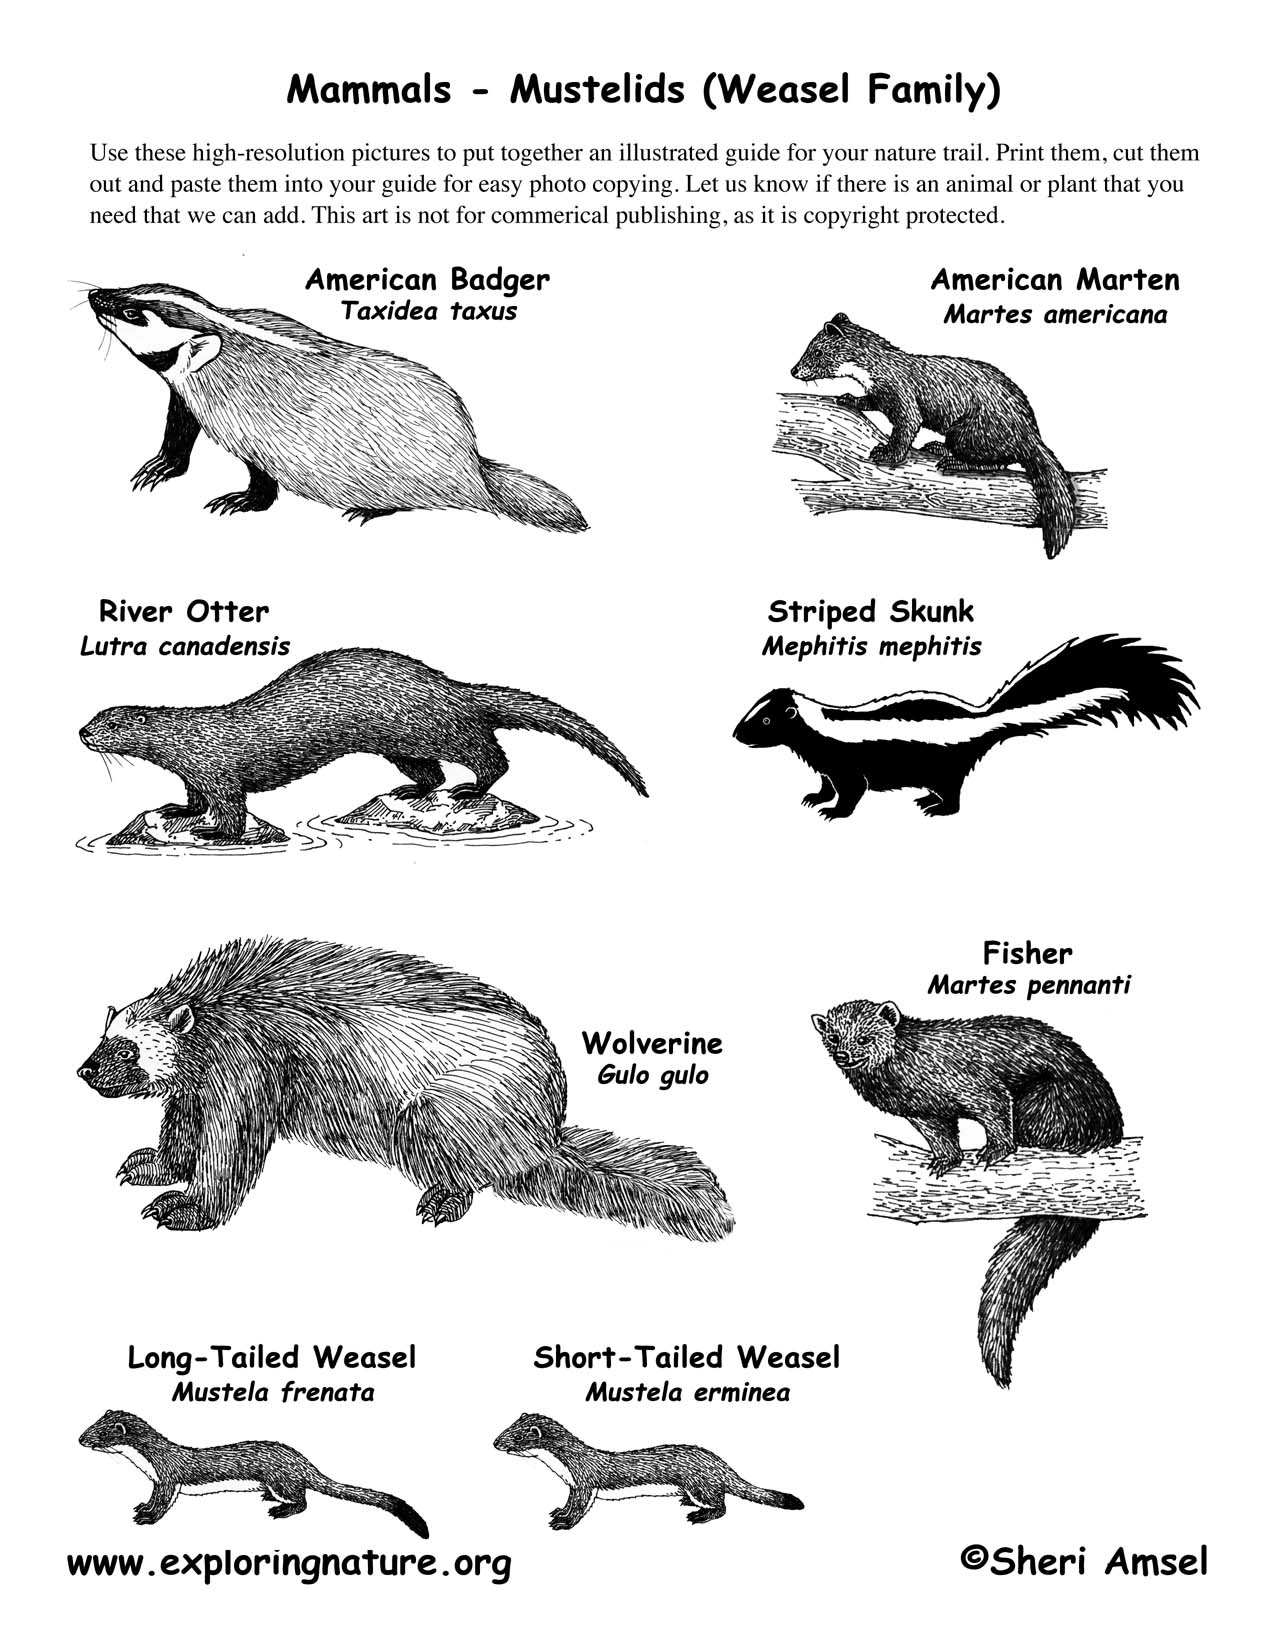 Mammals From the Weasel Family Mustelids